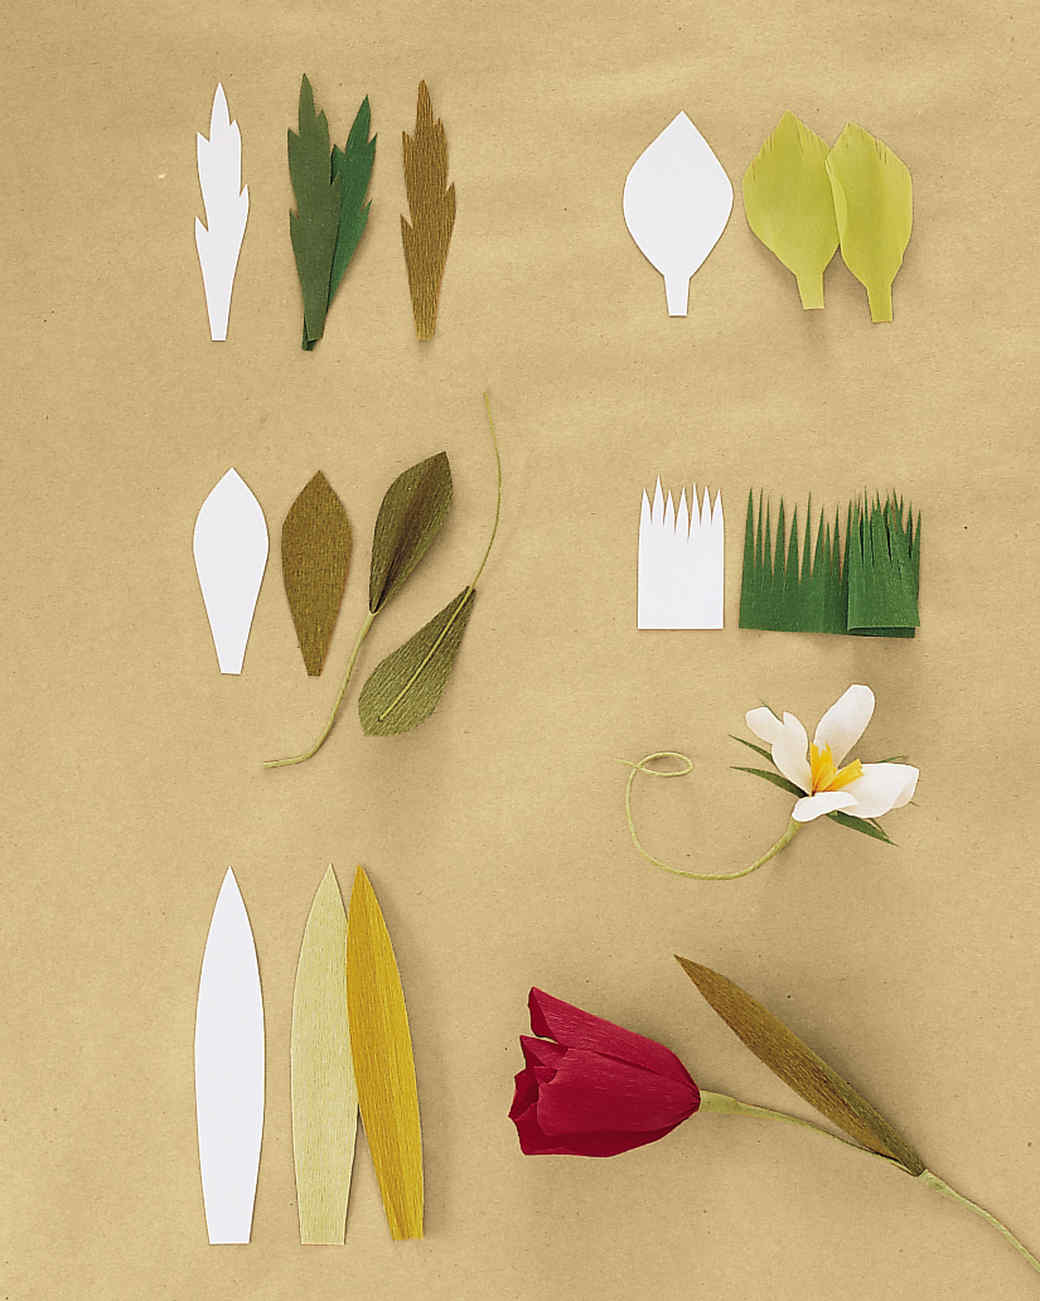 Make paper flowers martha stewart wiring data how to make crepe paper flowers martha stewart rh marthastewart com how to make paper flowers martha stewart make tissue paper flowers martha stewart mightylinksfo